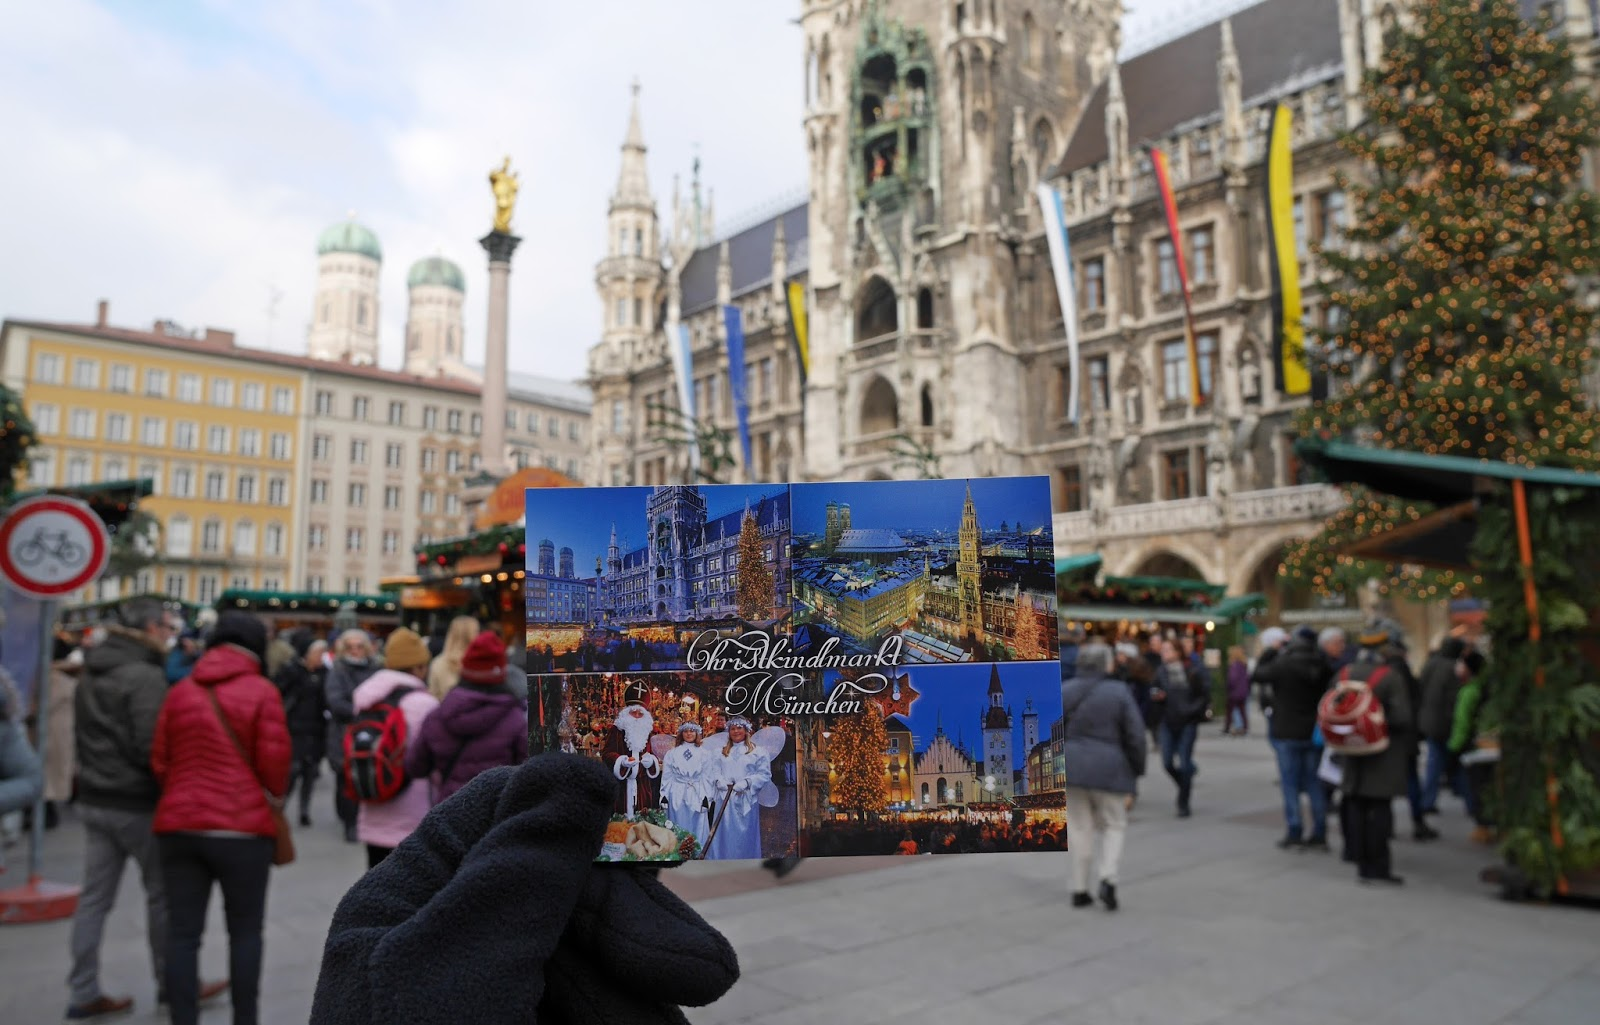 Postcard of the Munich Christmas Markets in front of Marienplatz